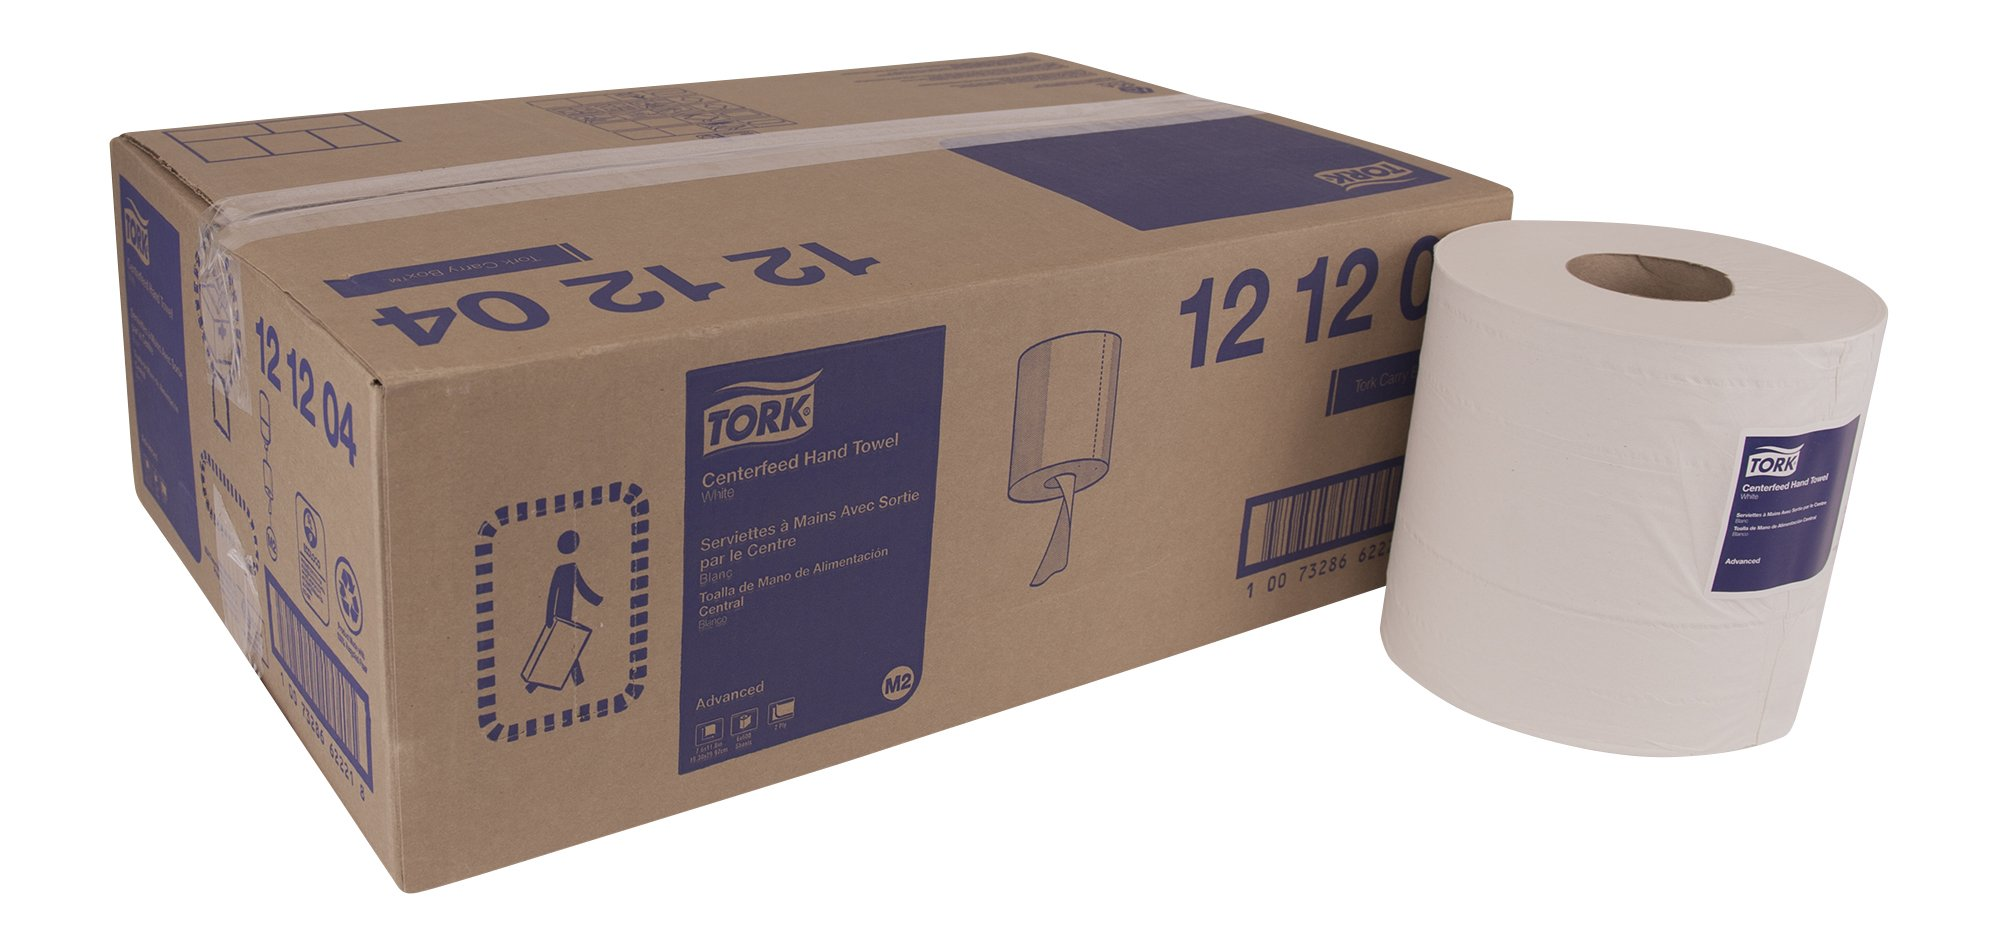 Tork Advanced 121204 Soft Centerfeed Hand Towel, 2-Ply, 7.6'' Width x 11.8'' Length, White (Case of 6 Rolls, 600 per Roll, 3,600 Towels) for use with Tork 559020A Or 559028A